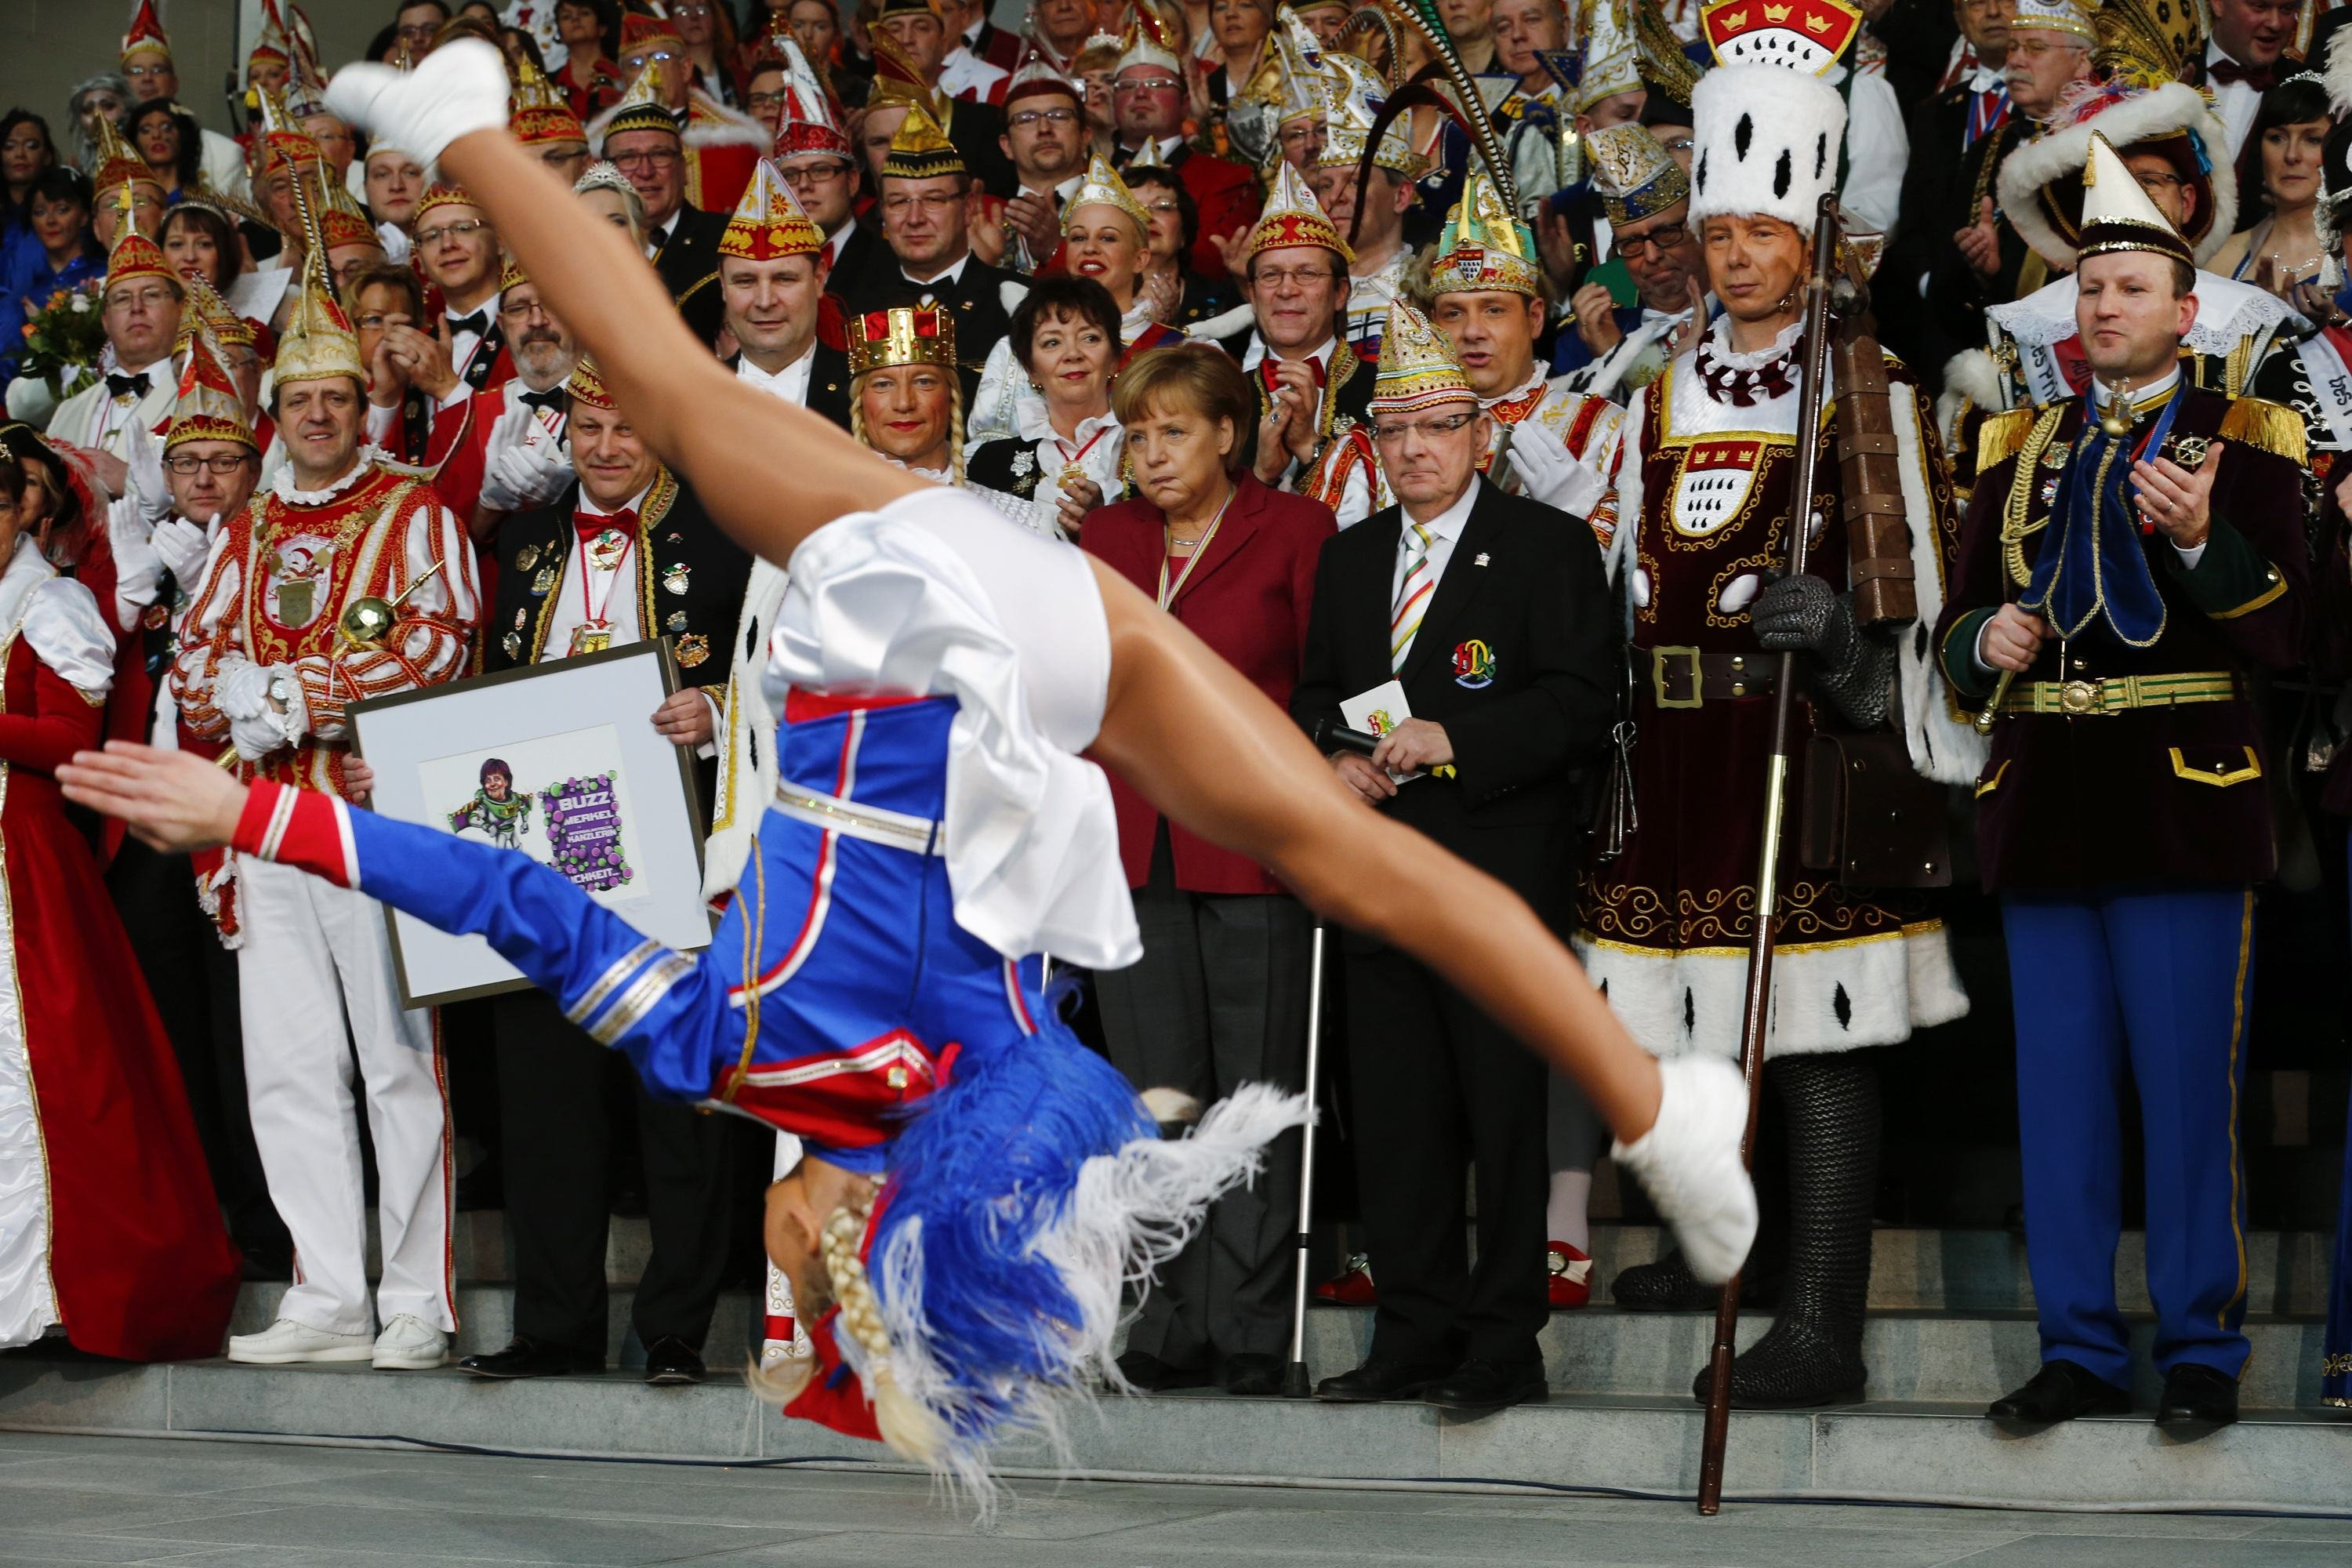 German Chancellor Angela Merkel (C) watches a dance performance by Liana Wolf during a reception of German carnival societies at the Chancellery in Berlin Feb. 18, 2014.